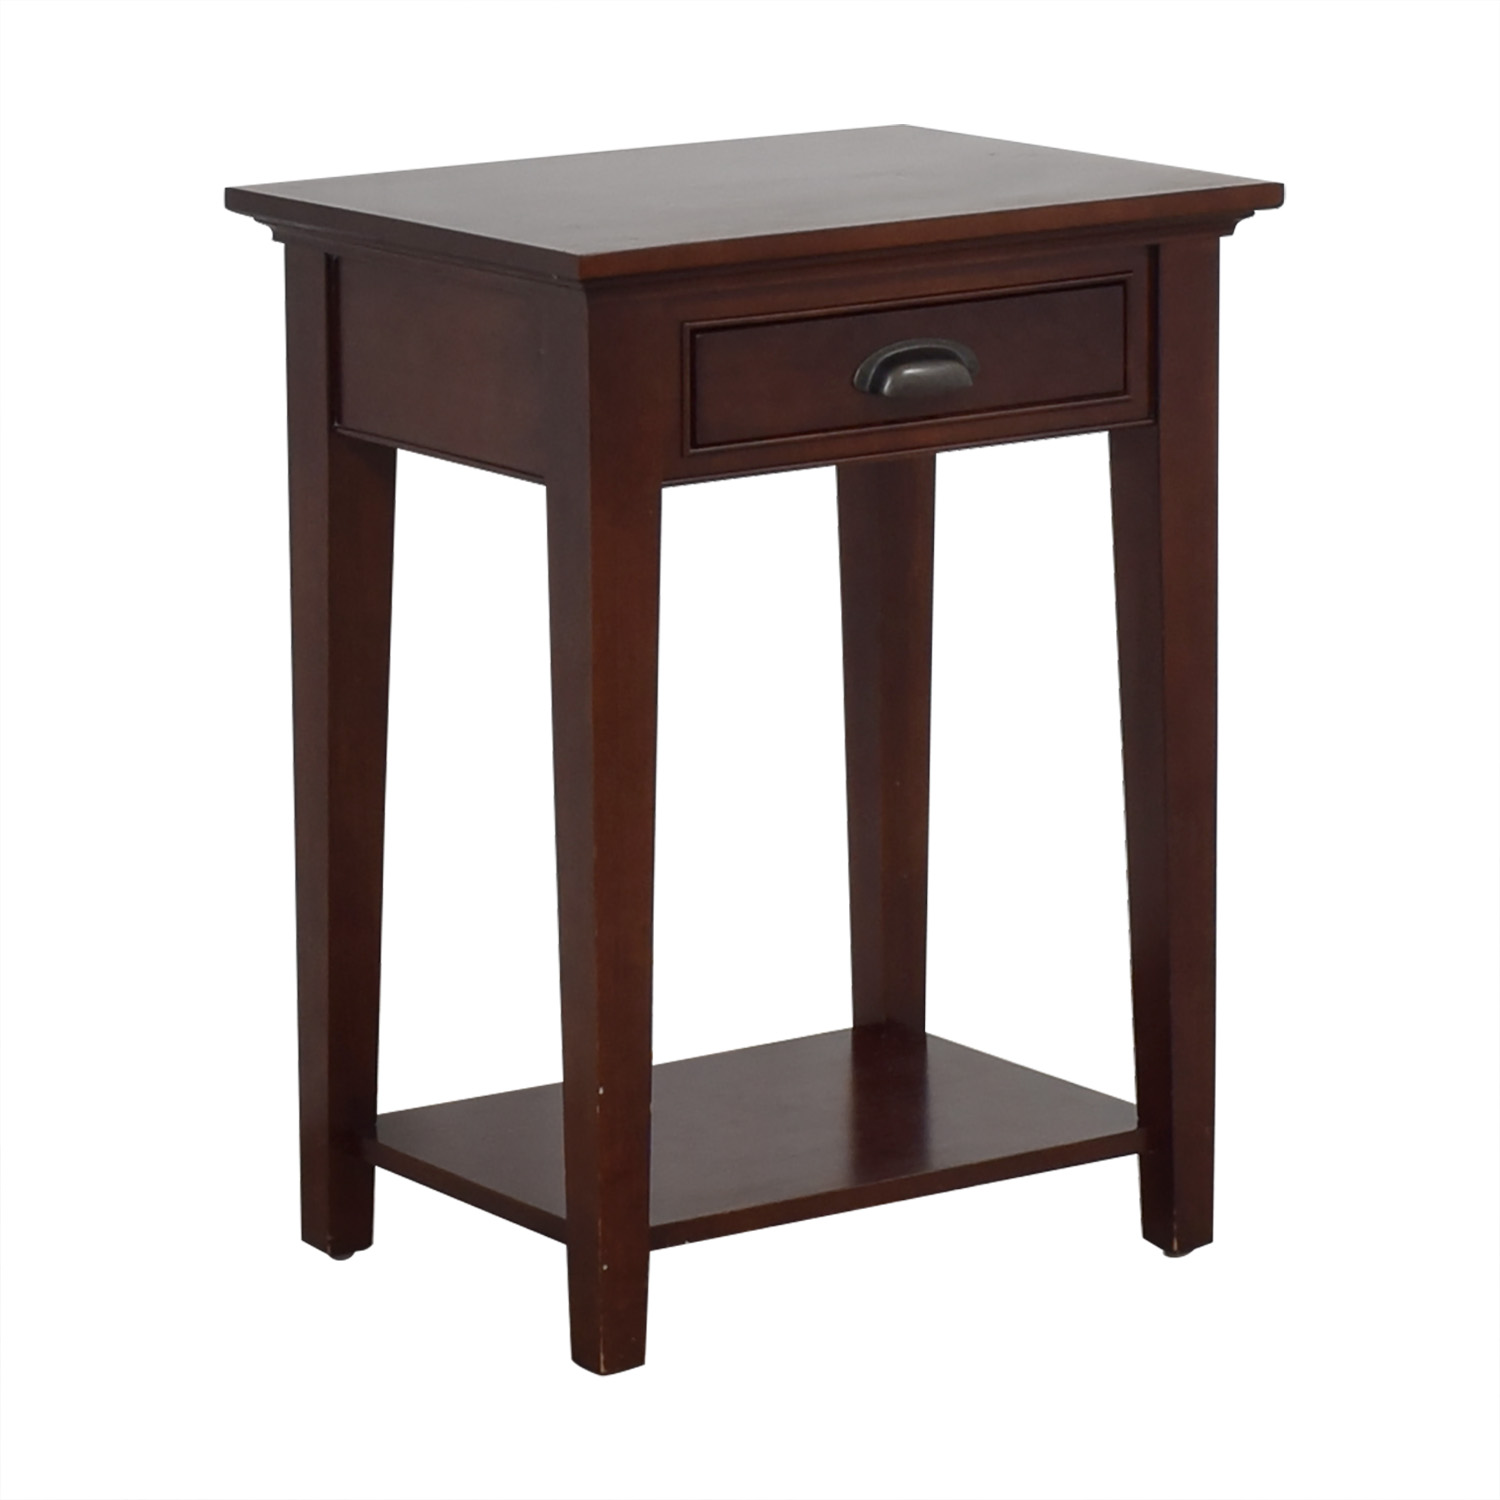 Restoration Hardware Restoration Hardware Marston 1-Drawer Nightstand dimensions